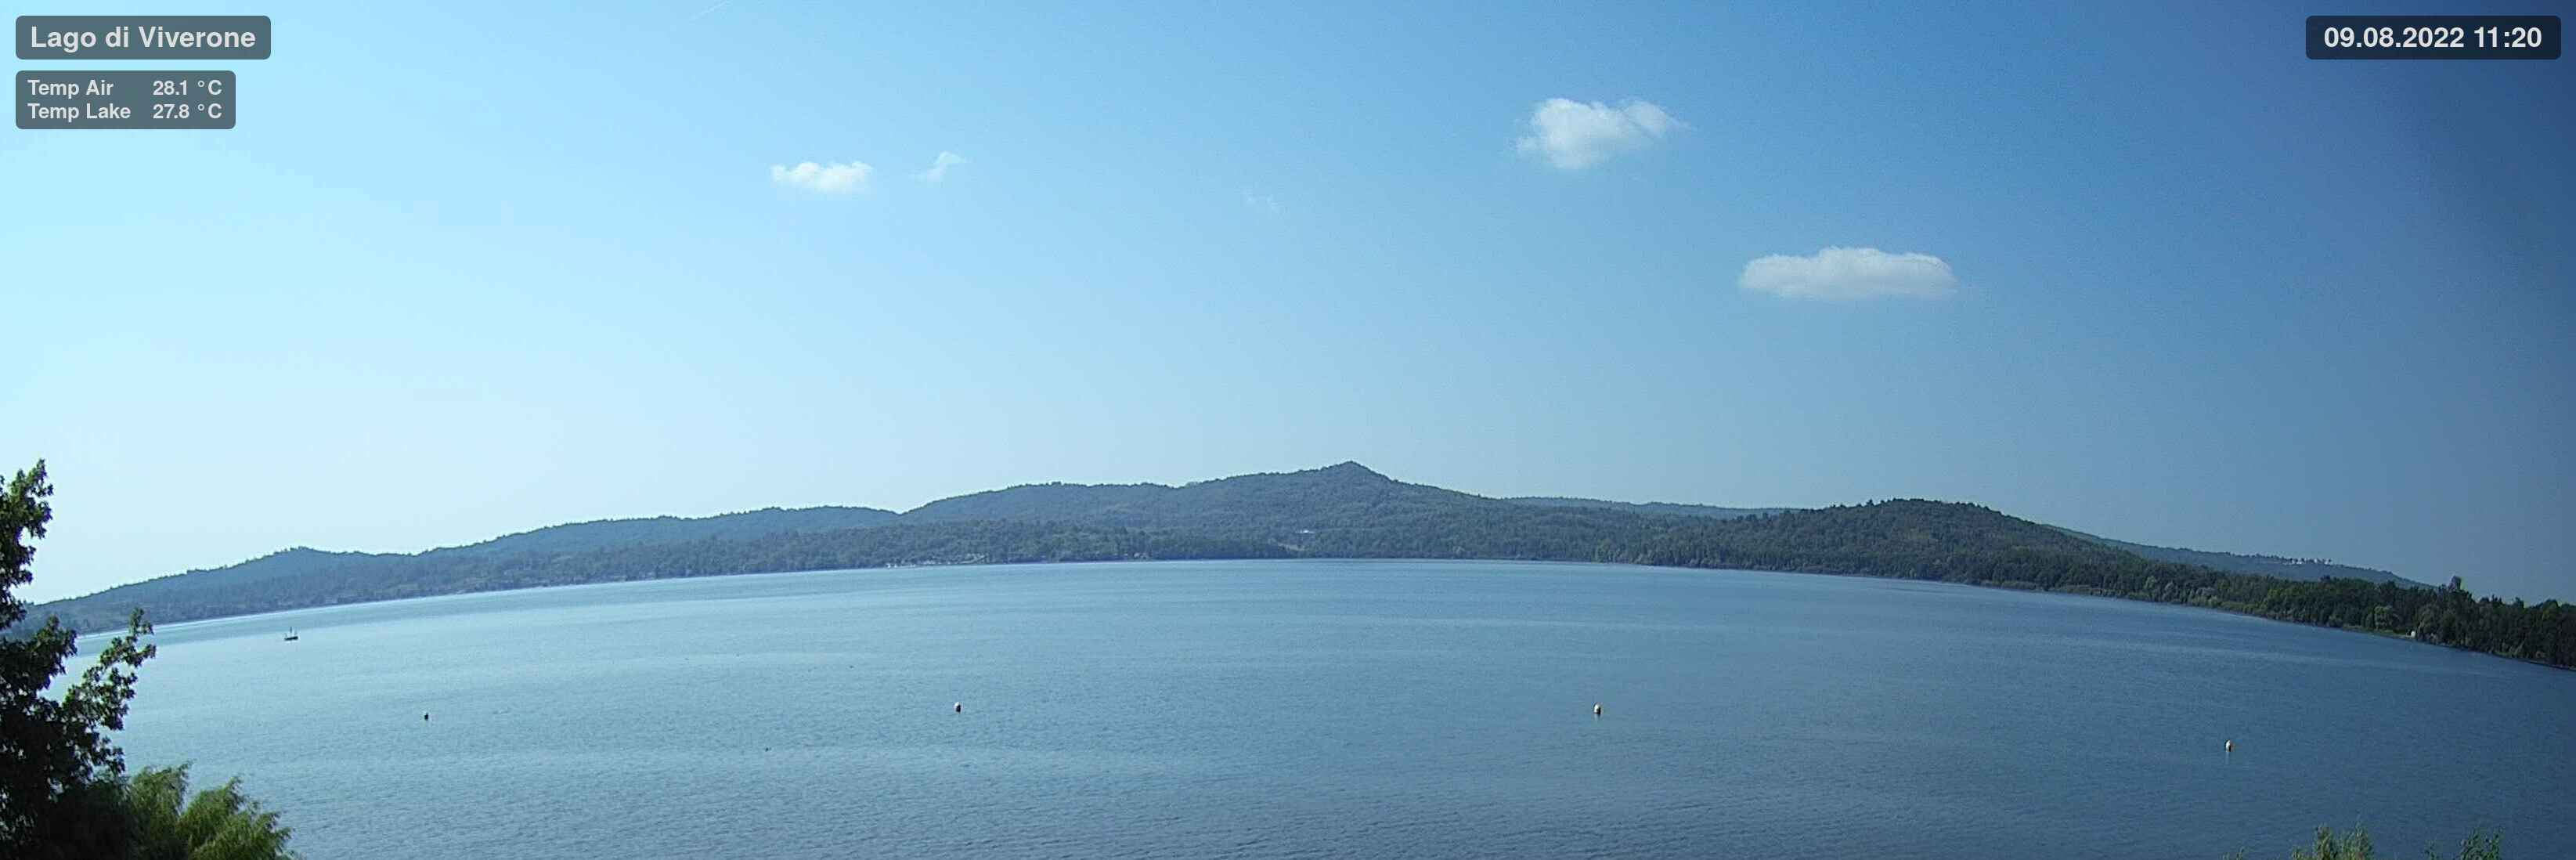 Webcam Lago Di Viverone (BI)